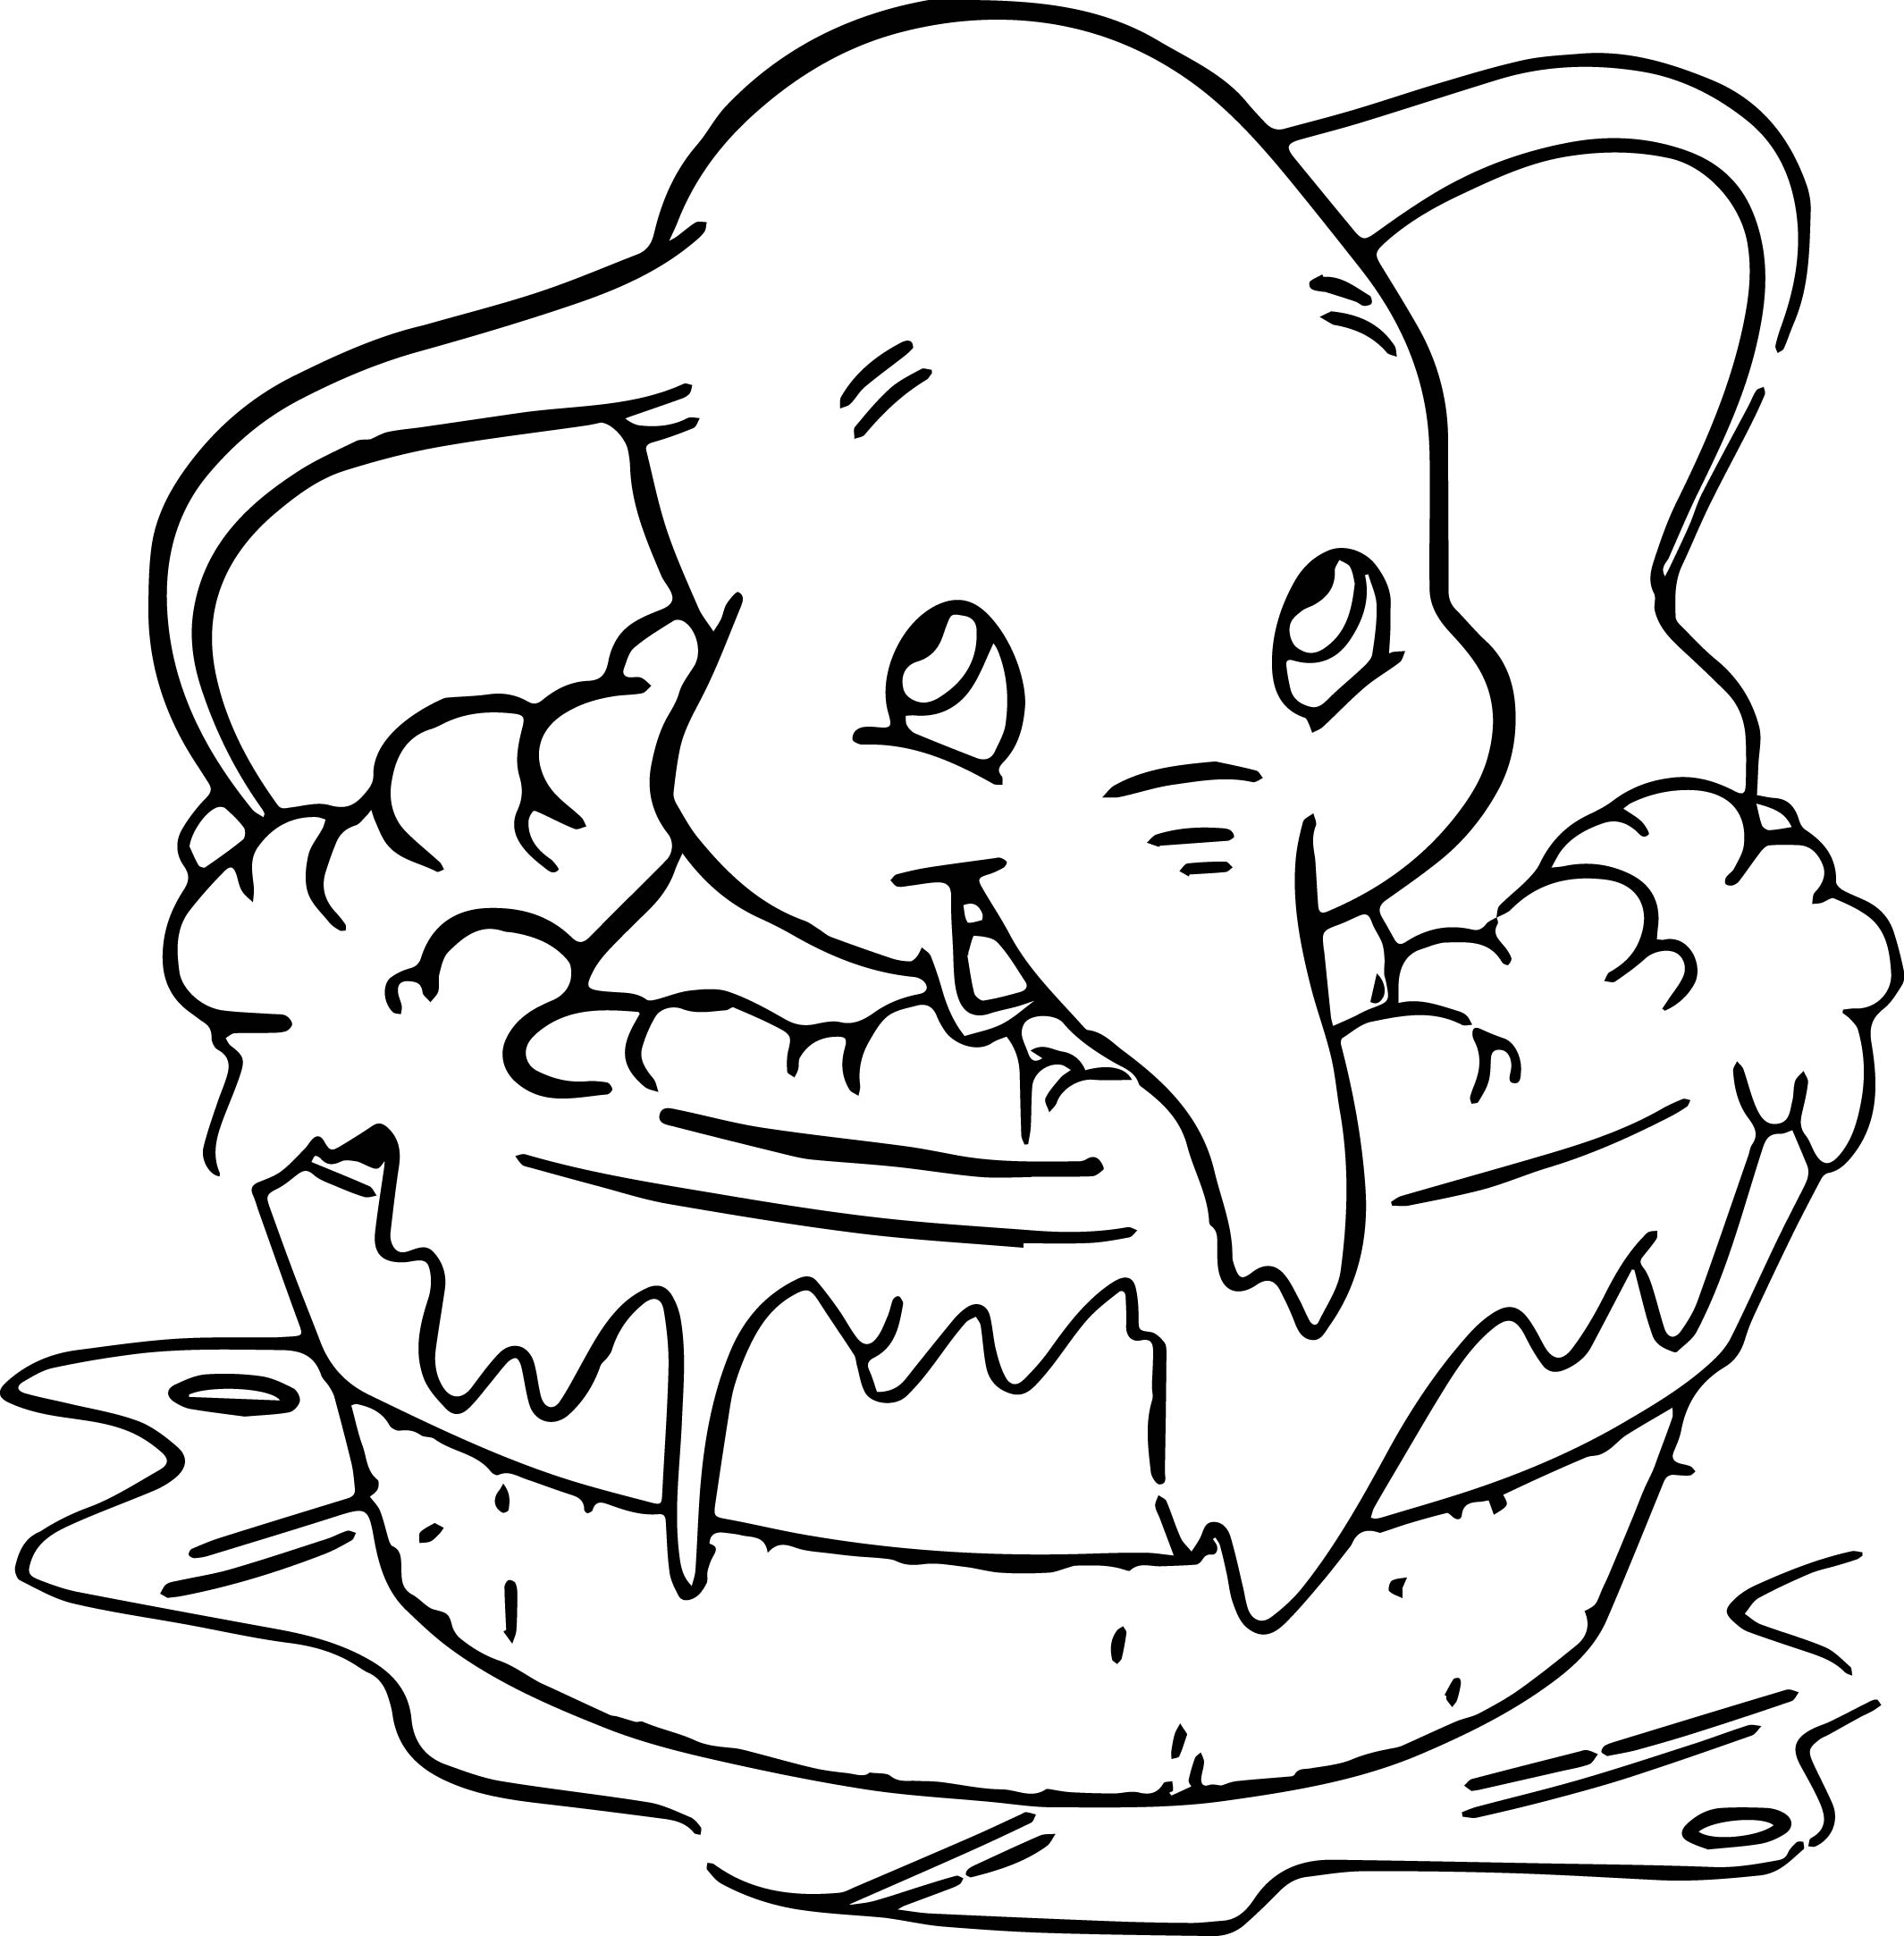 dumbo coloring pages - disney dumbo elephant coloring pages